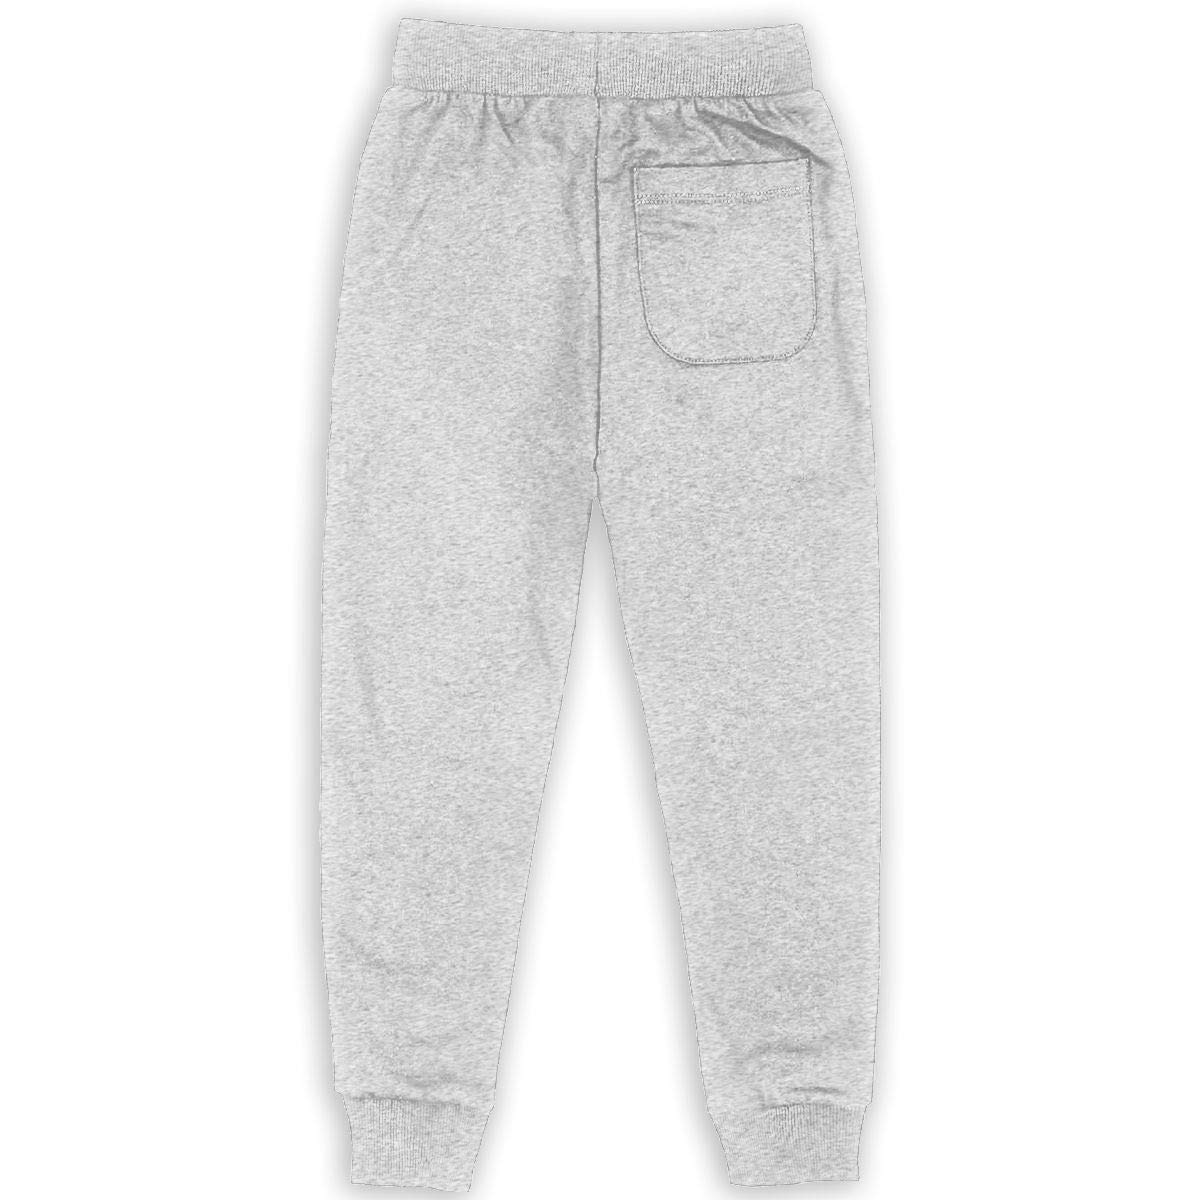 Xinding Boys Fashion Training Sweatpants Text Eat Sleep Basketball Adjustable Waist Pants with Pocket